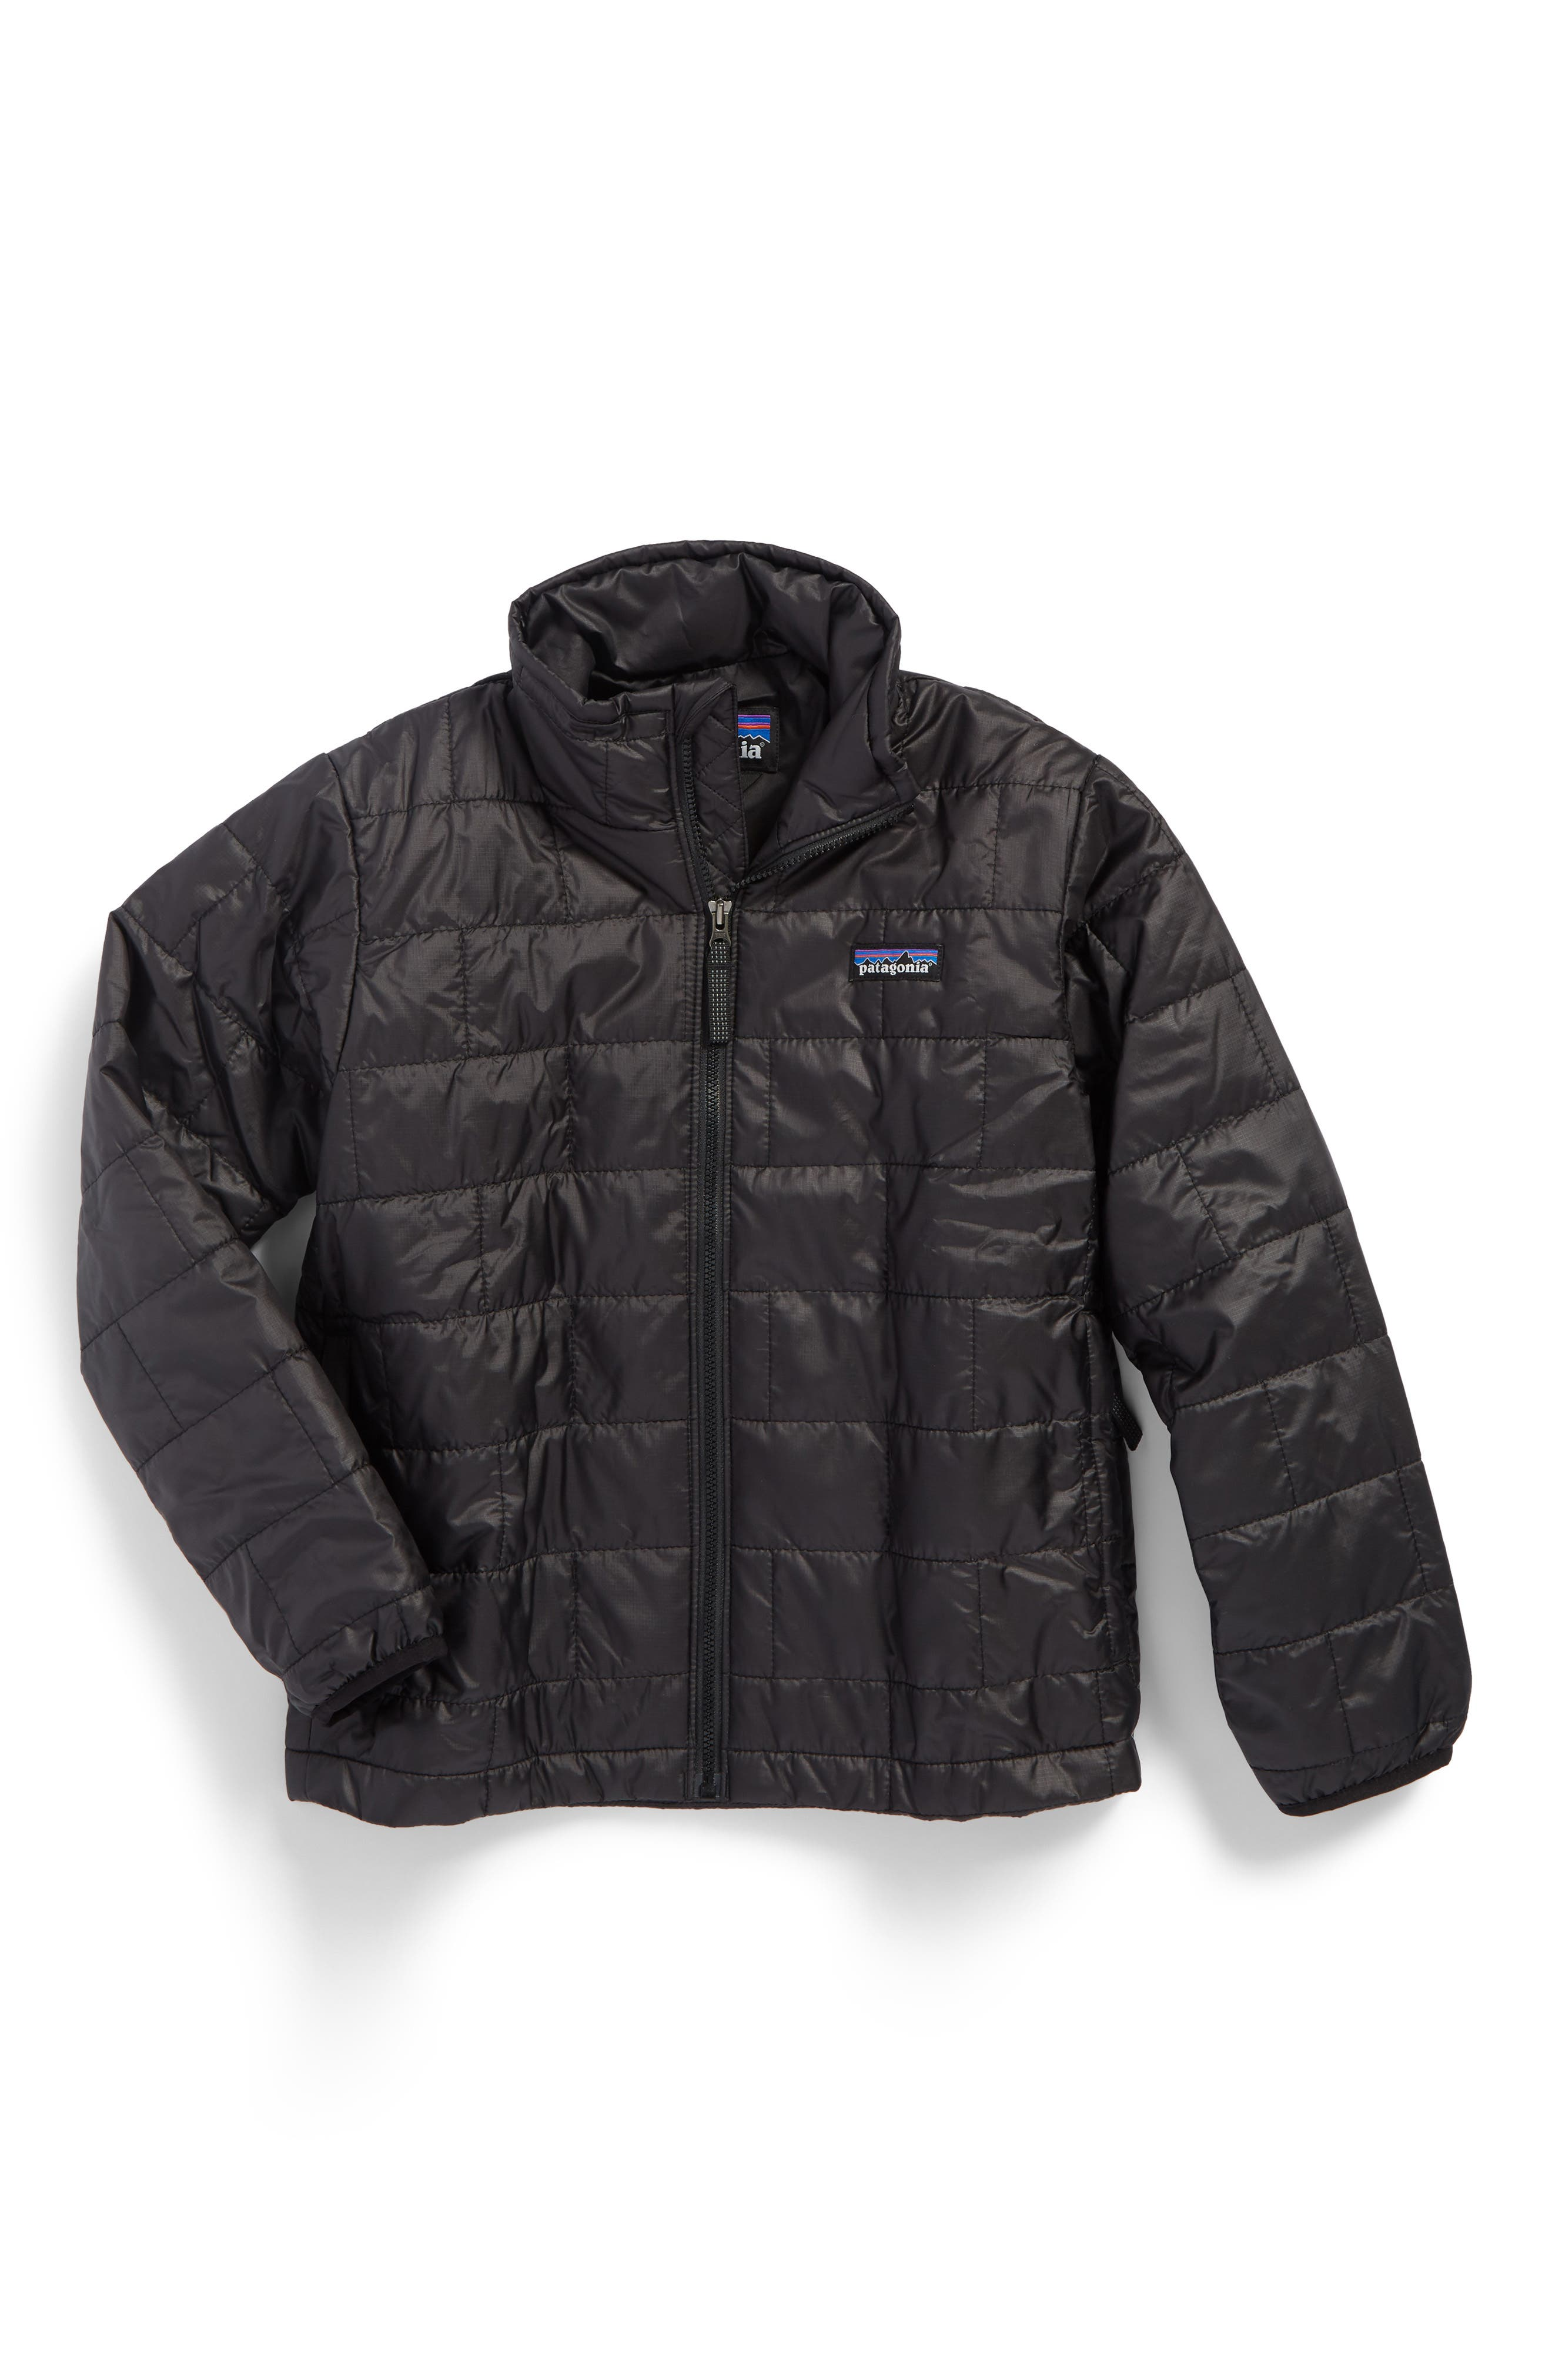 Boys Patagonia Nano Puff Water Repellent Primaloft Insulated Jacket Size XL (14)  Black